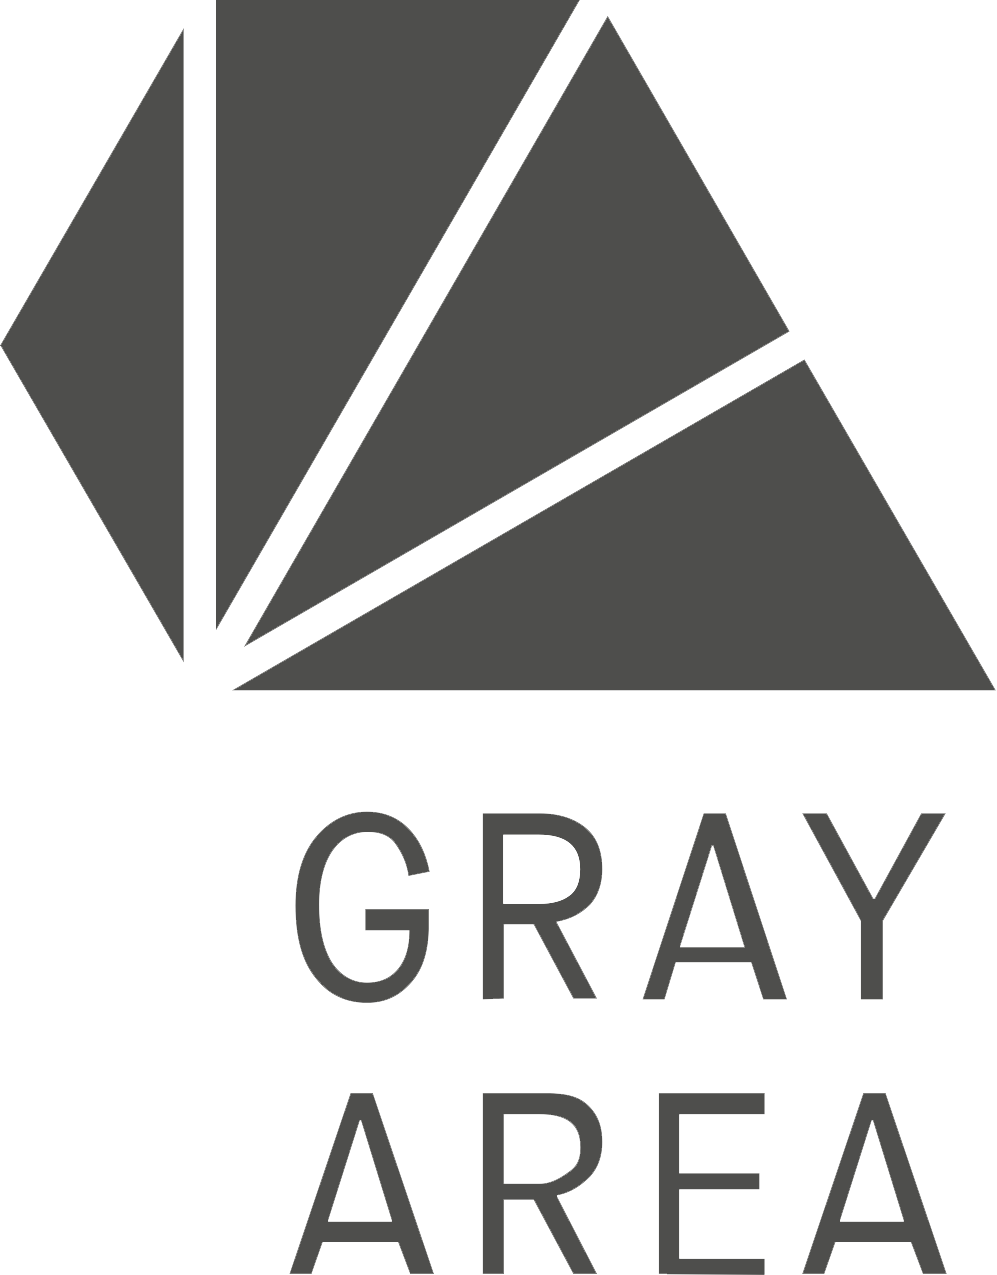 ga-square-text-gray_noback